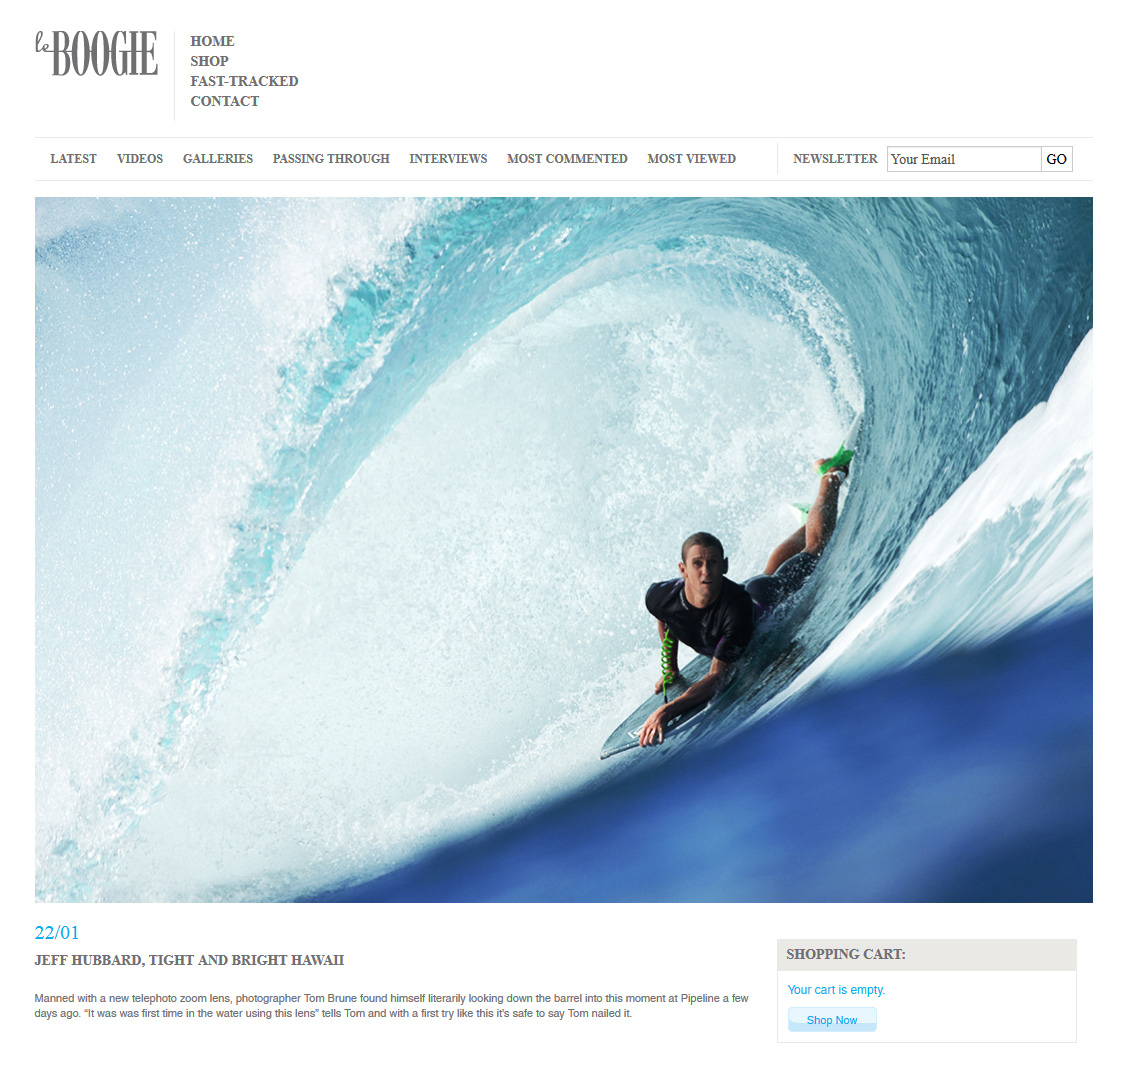 Tom Brune's photo of Jeff hubbard on the Le Boogie website